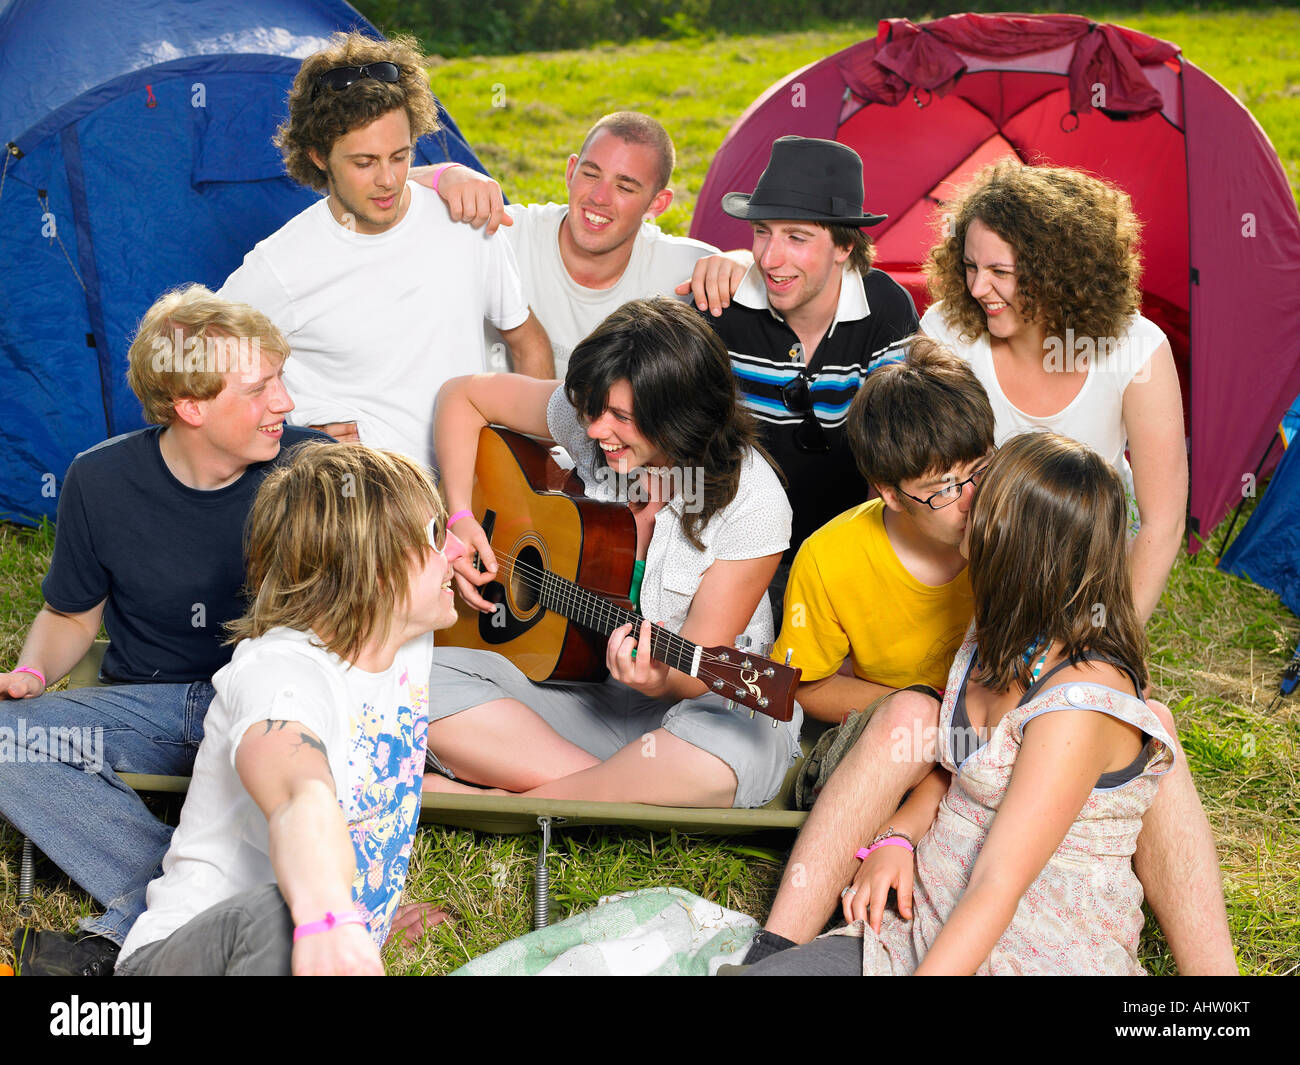 Group outside tent one girl playing a guitar - Stock Image